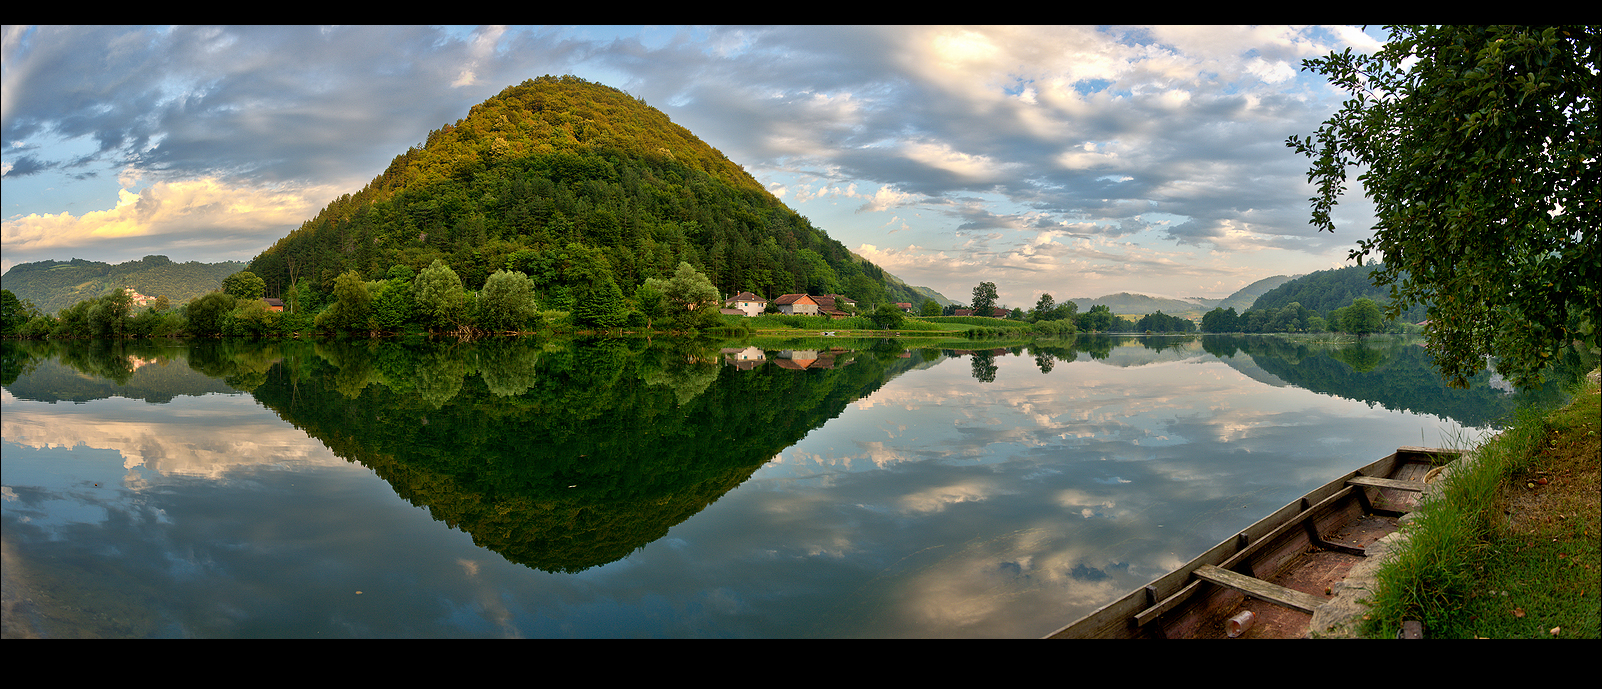 Mountain Plavno & River Una.....Reflections in the Morning...